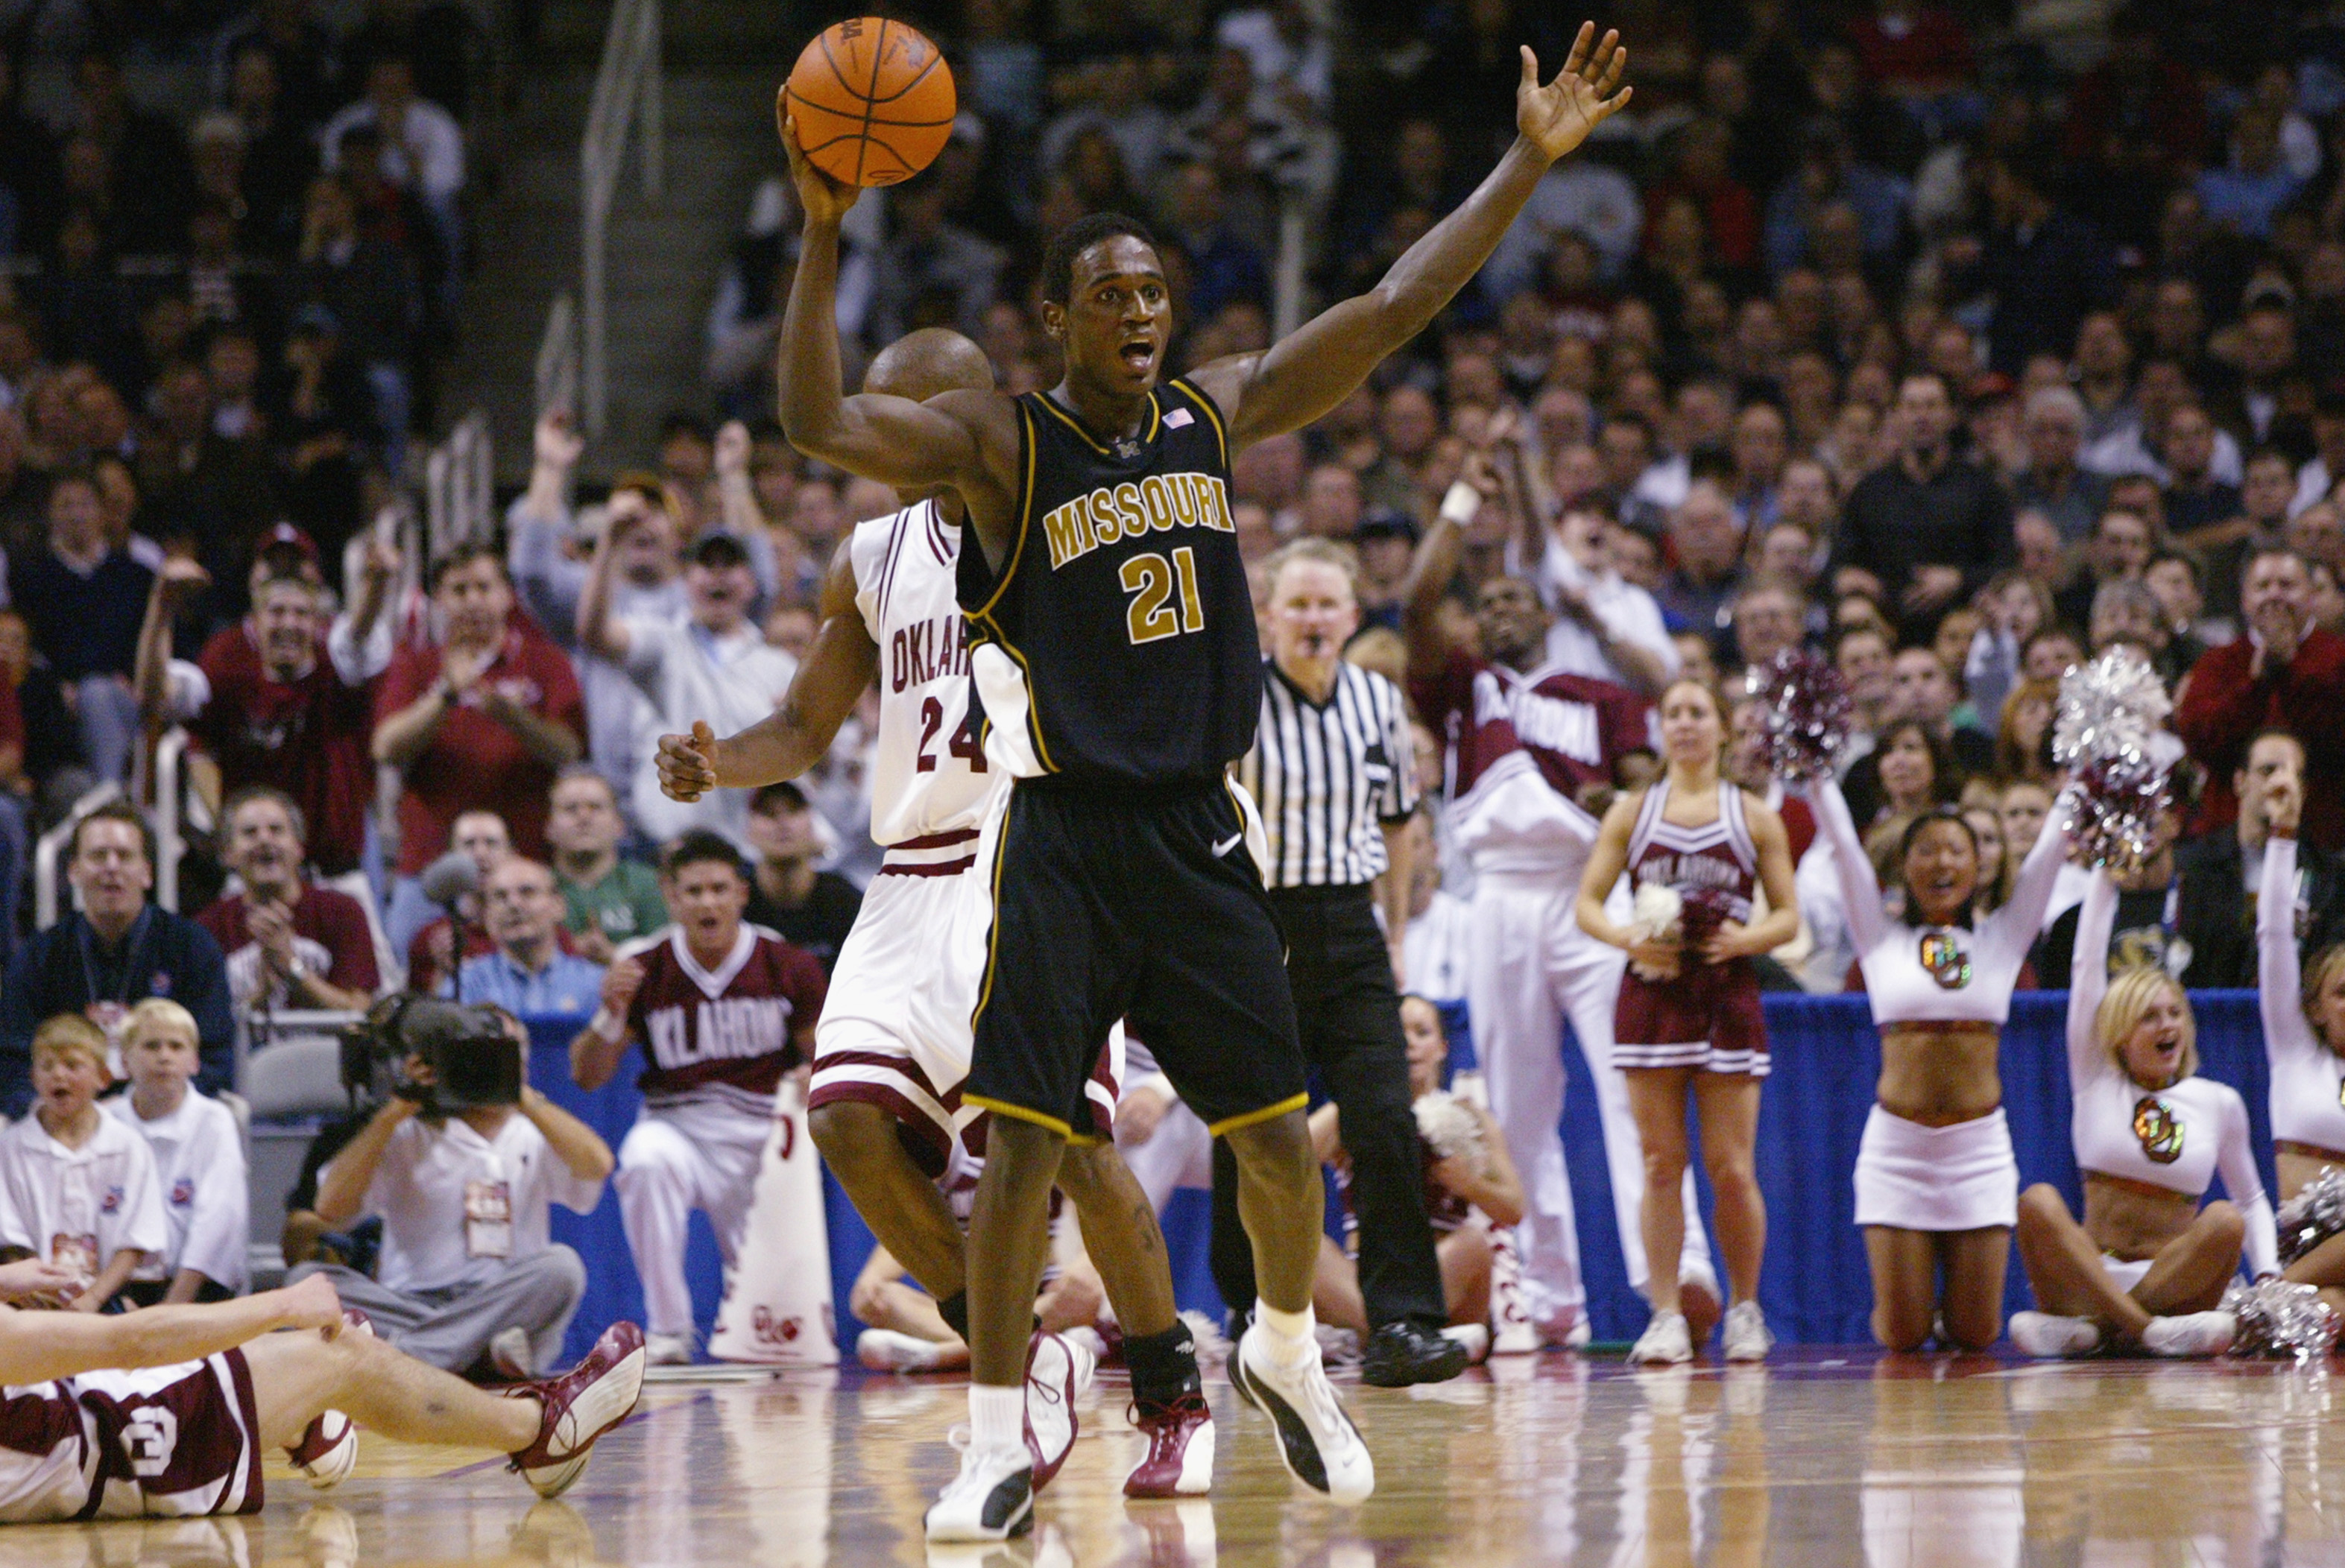 SAN JOSE, CA - MARCH 23:  Kareem Rush #21 of the Missouri Tigers argues a call during the West Regional Final of the 2002 NCAA Men's Basketball Tournament against the Oklahoma Sooners on March 23, 2002 at Compaq Center in San Jose, California.  The Sooner